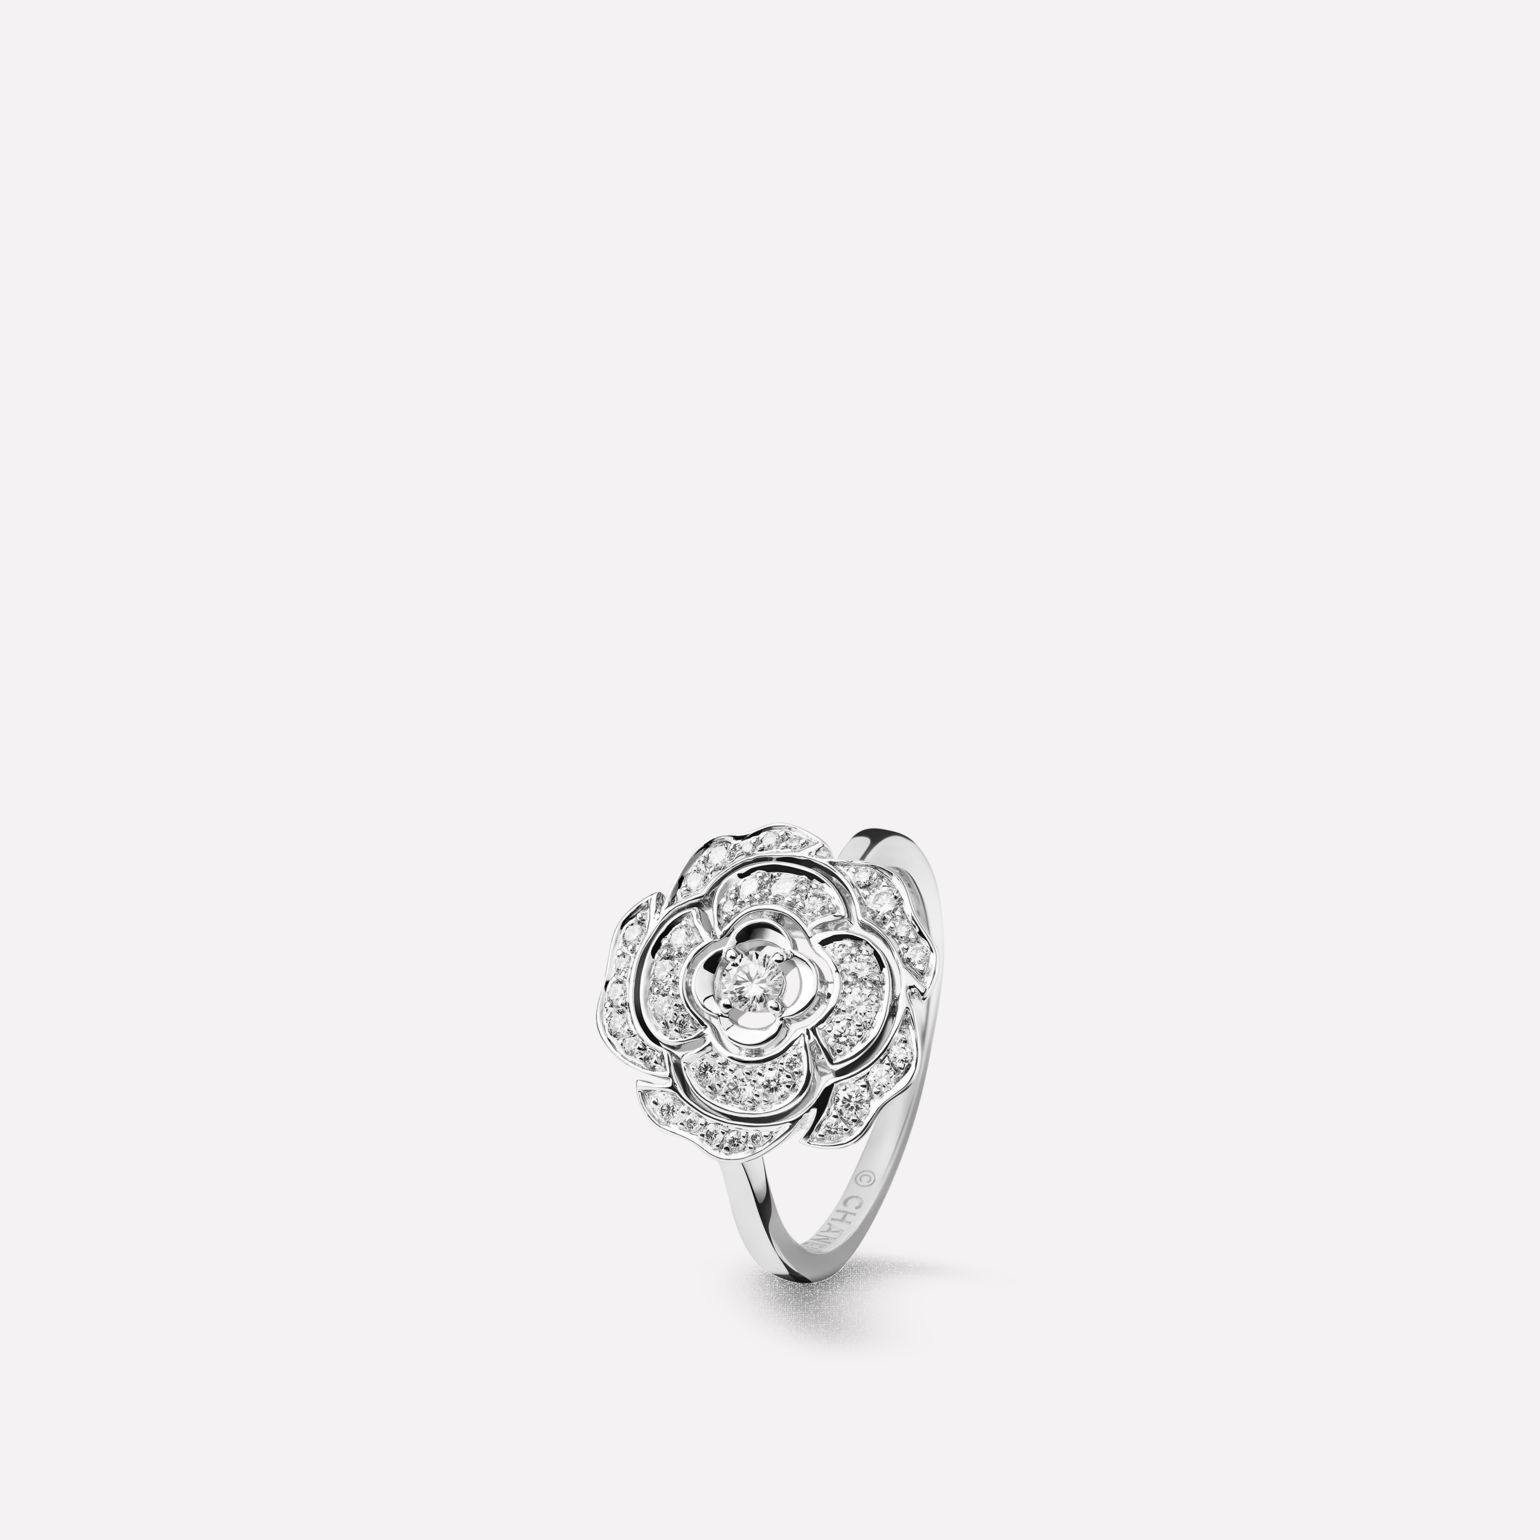 Camélia Ring Camellia bud motif in 18K white gold, diamonds and central diamond